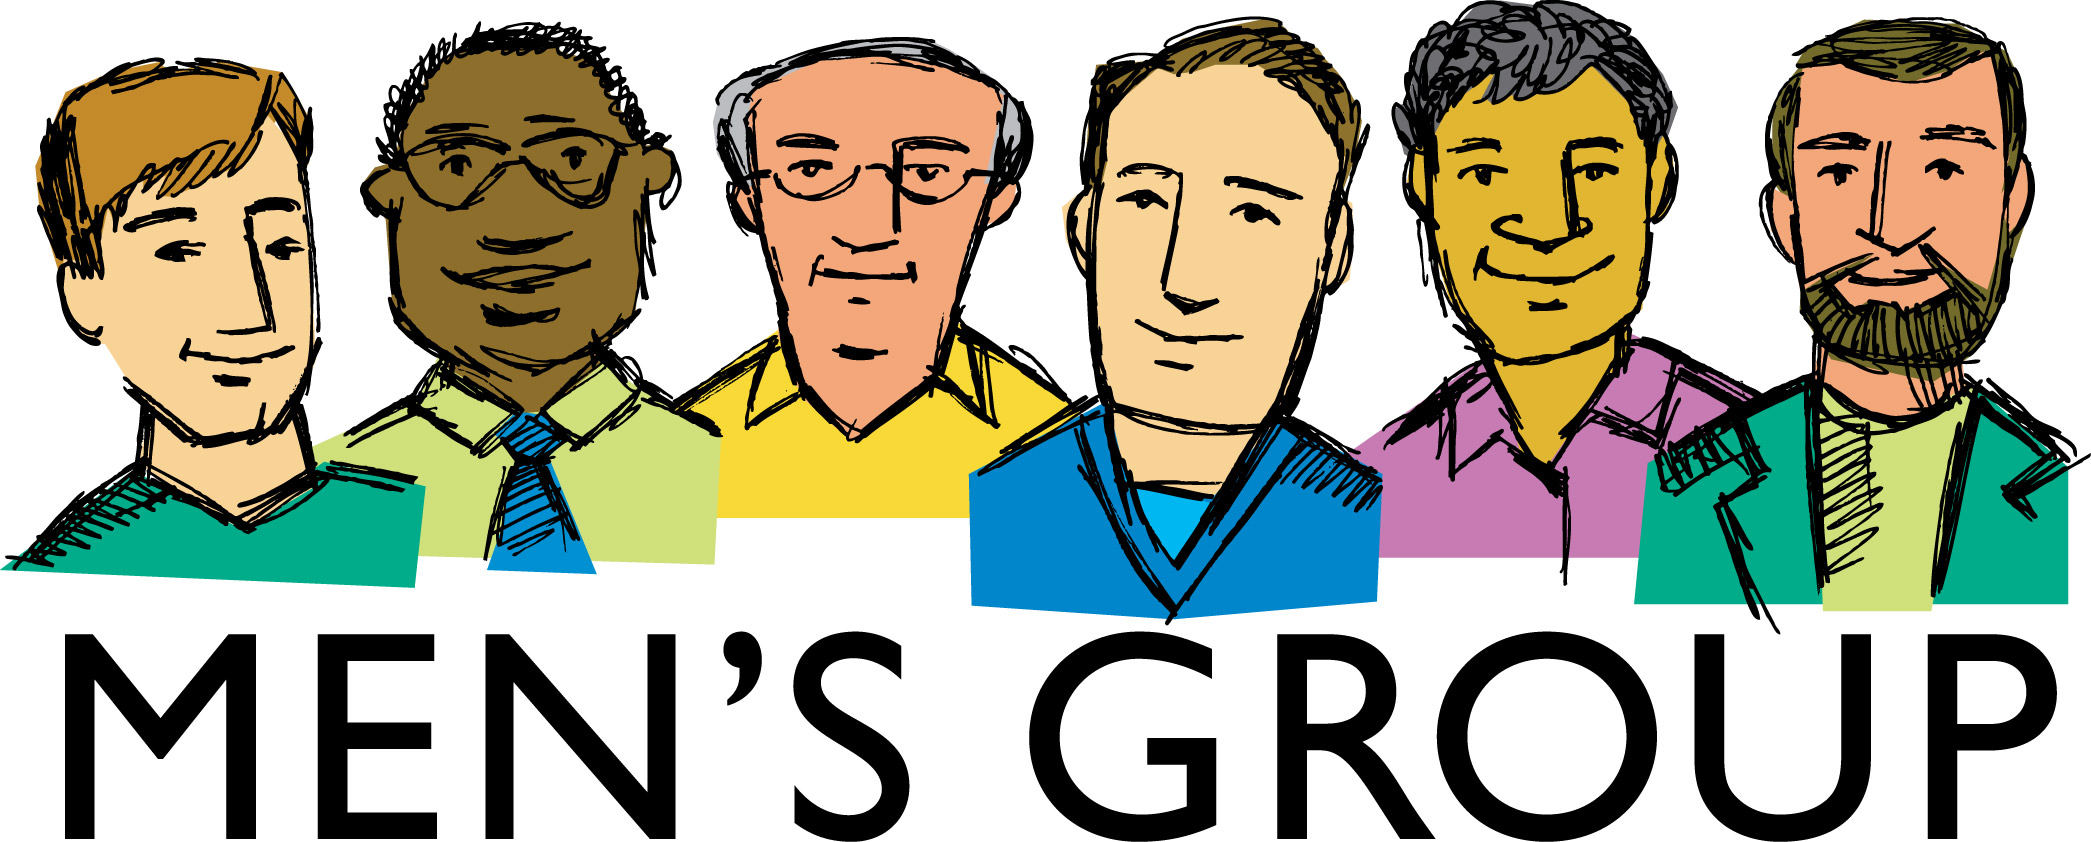 Men's Clipart.